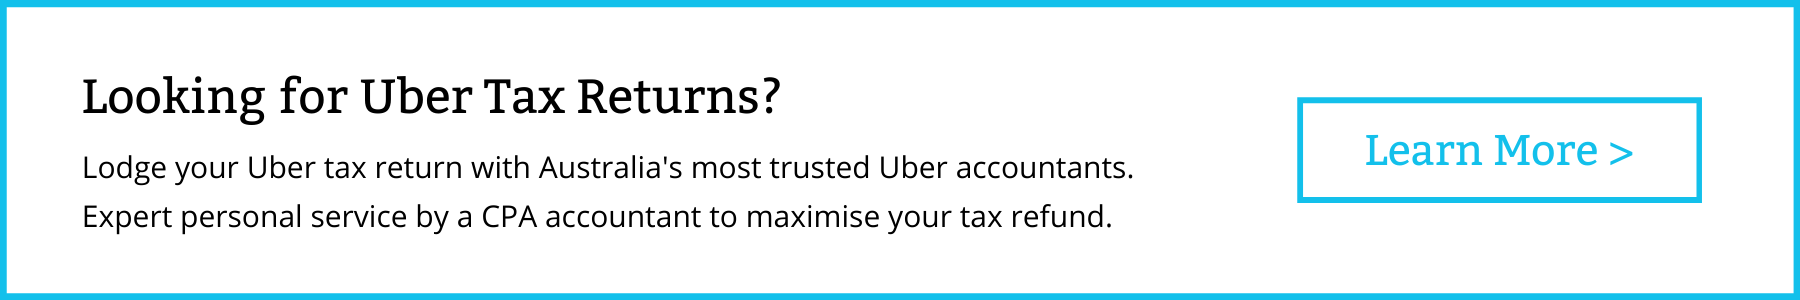 DriveTax Uber Tax Lodgment